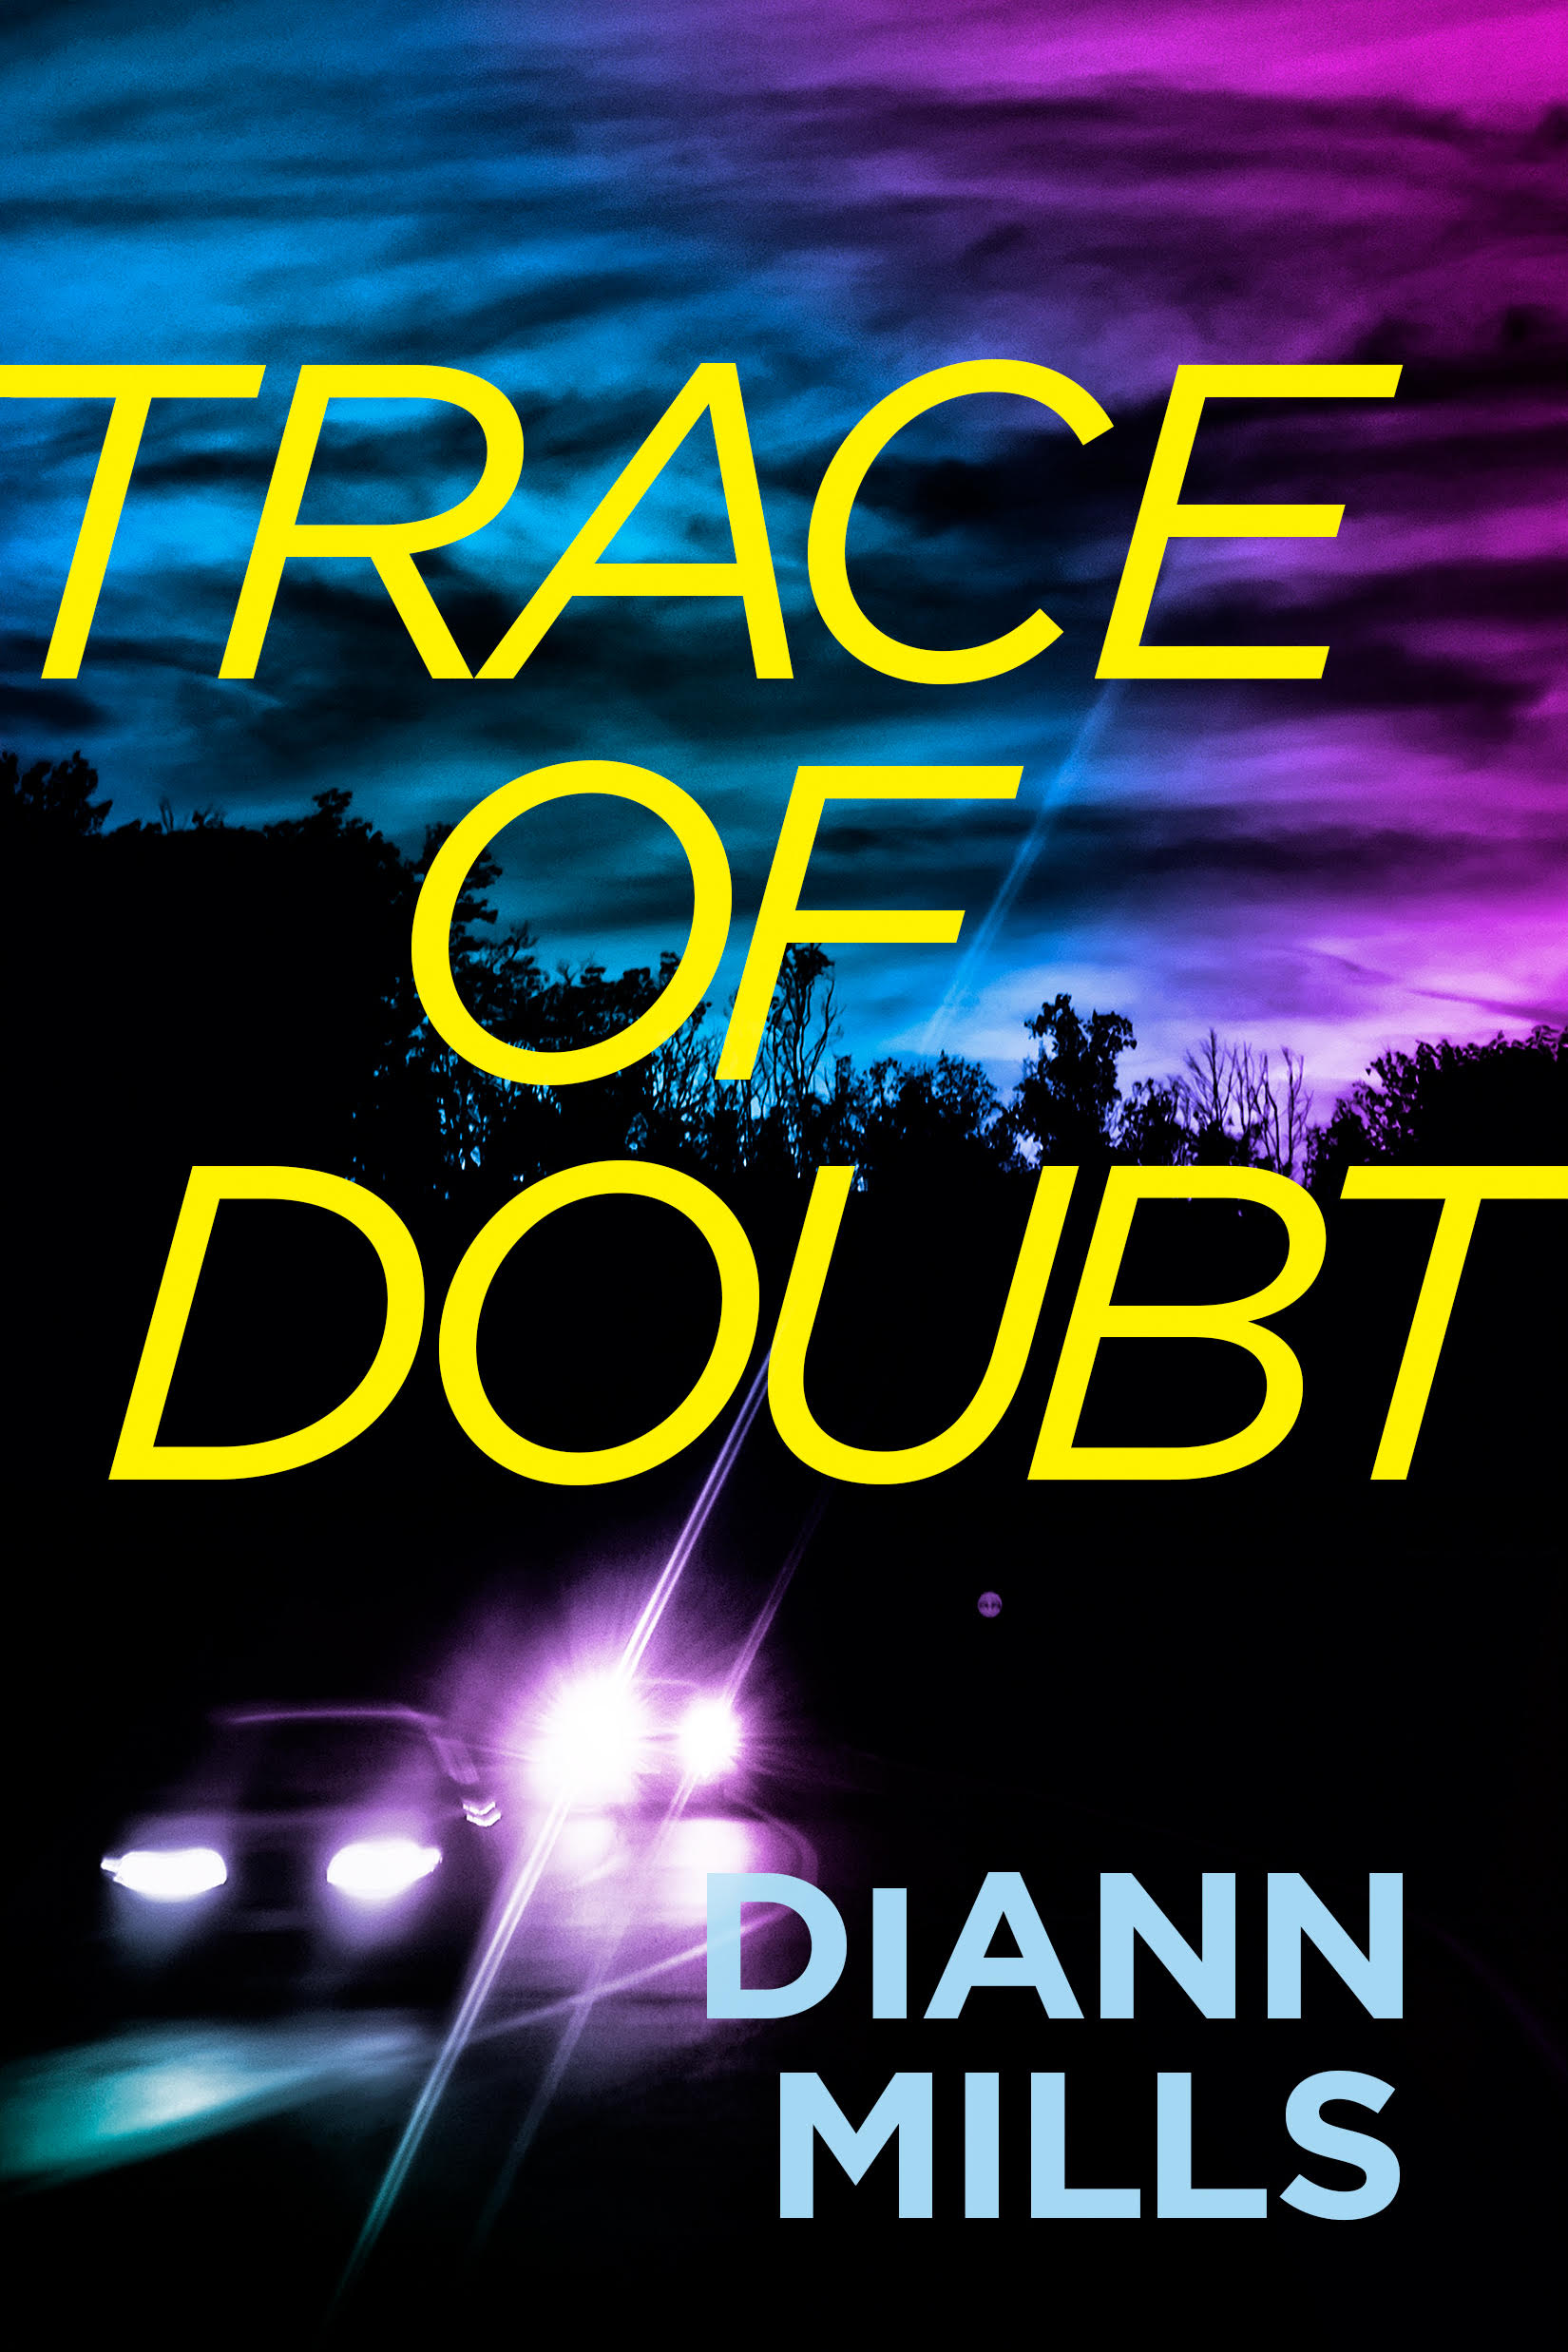 trace-of-doubt-by-diann-mills--cover